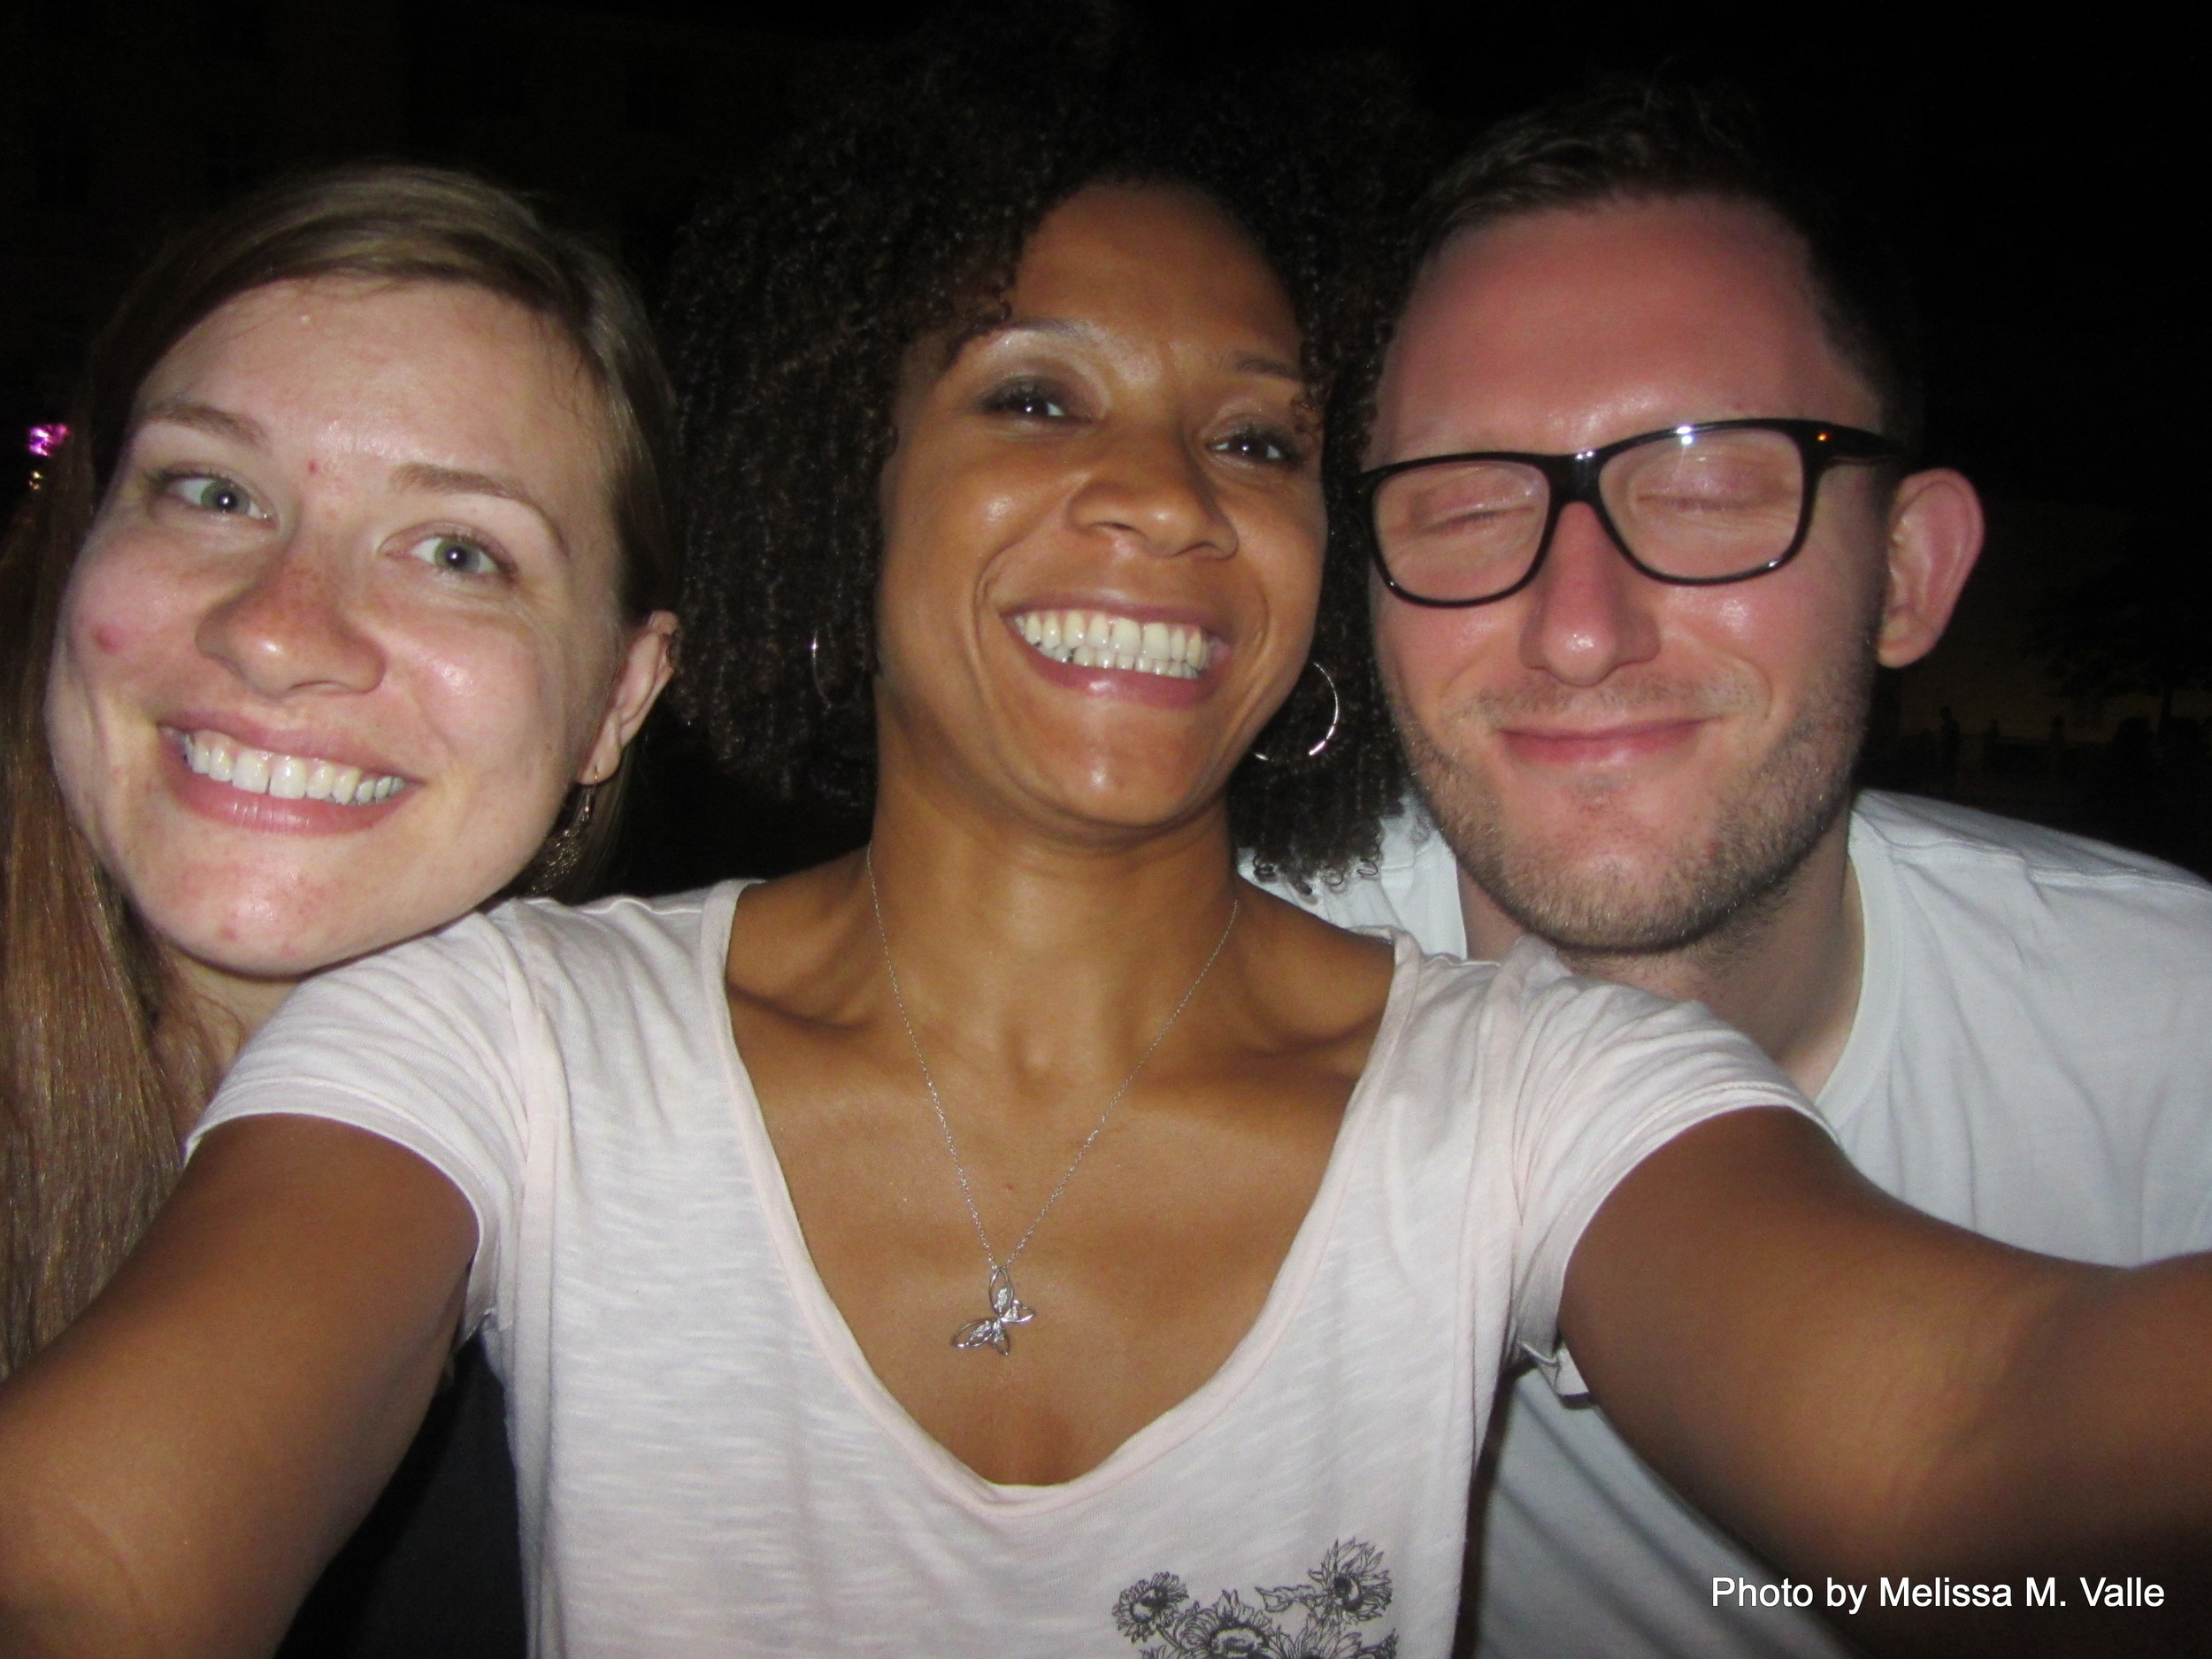 7.7.14 Vienna, Austria-wining it up in Museum Quartier after Amin lecture (19)- me, Sam and Sebastian.JPG